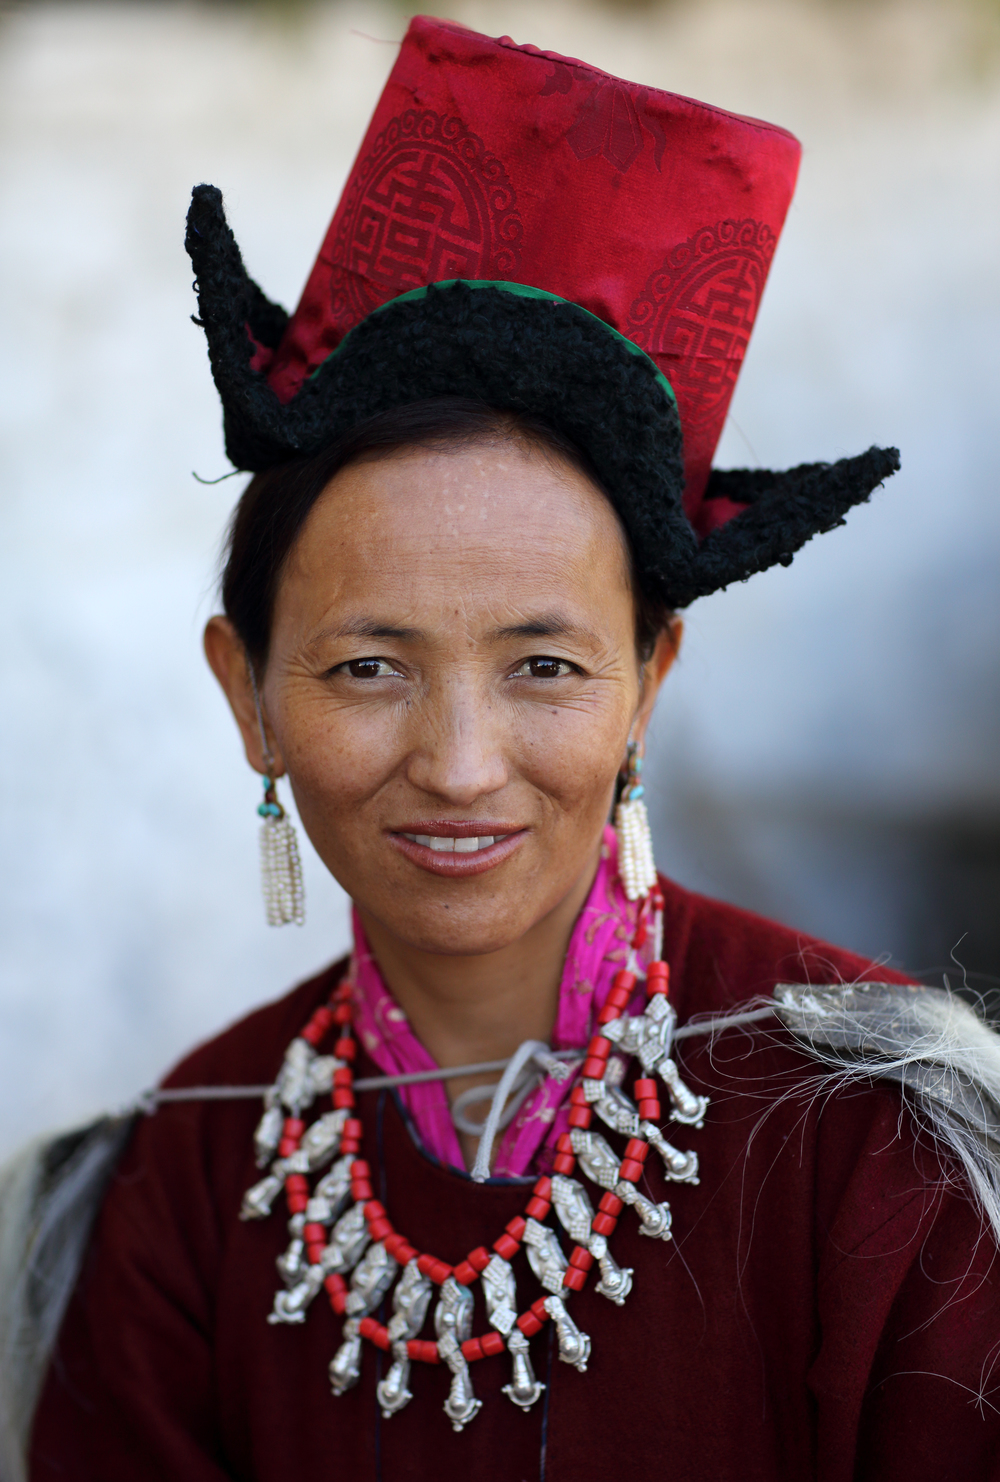 Traditional Dress, Ladakh, India (Source:  Dietmar Temps )